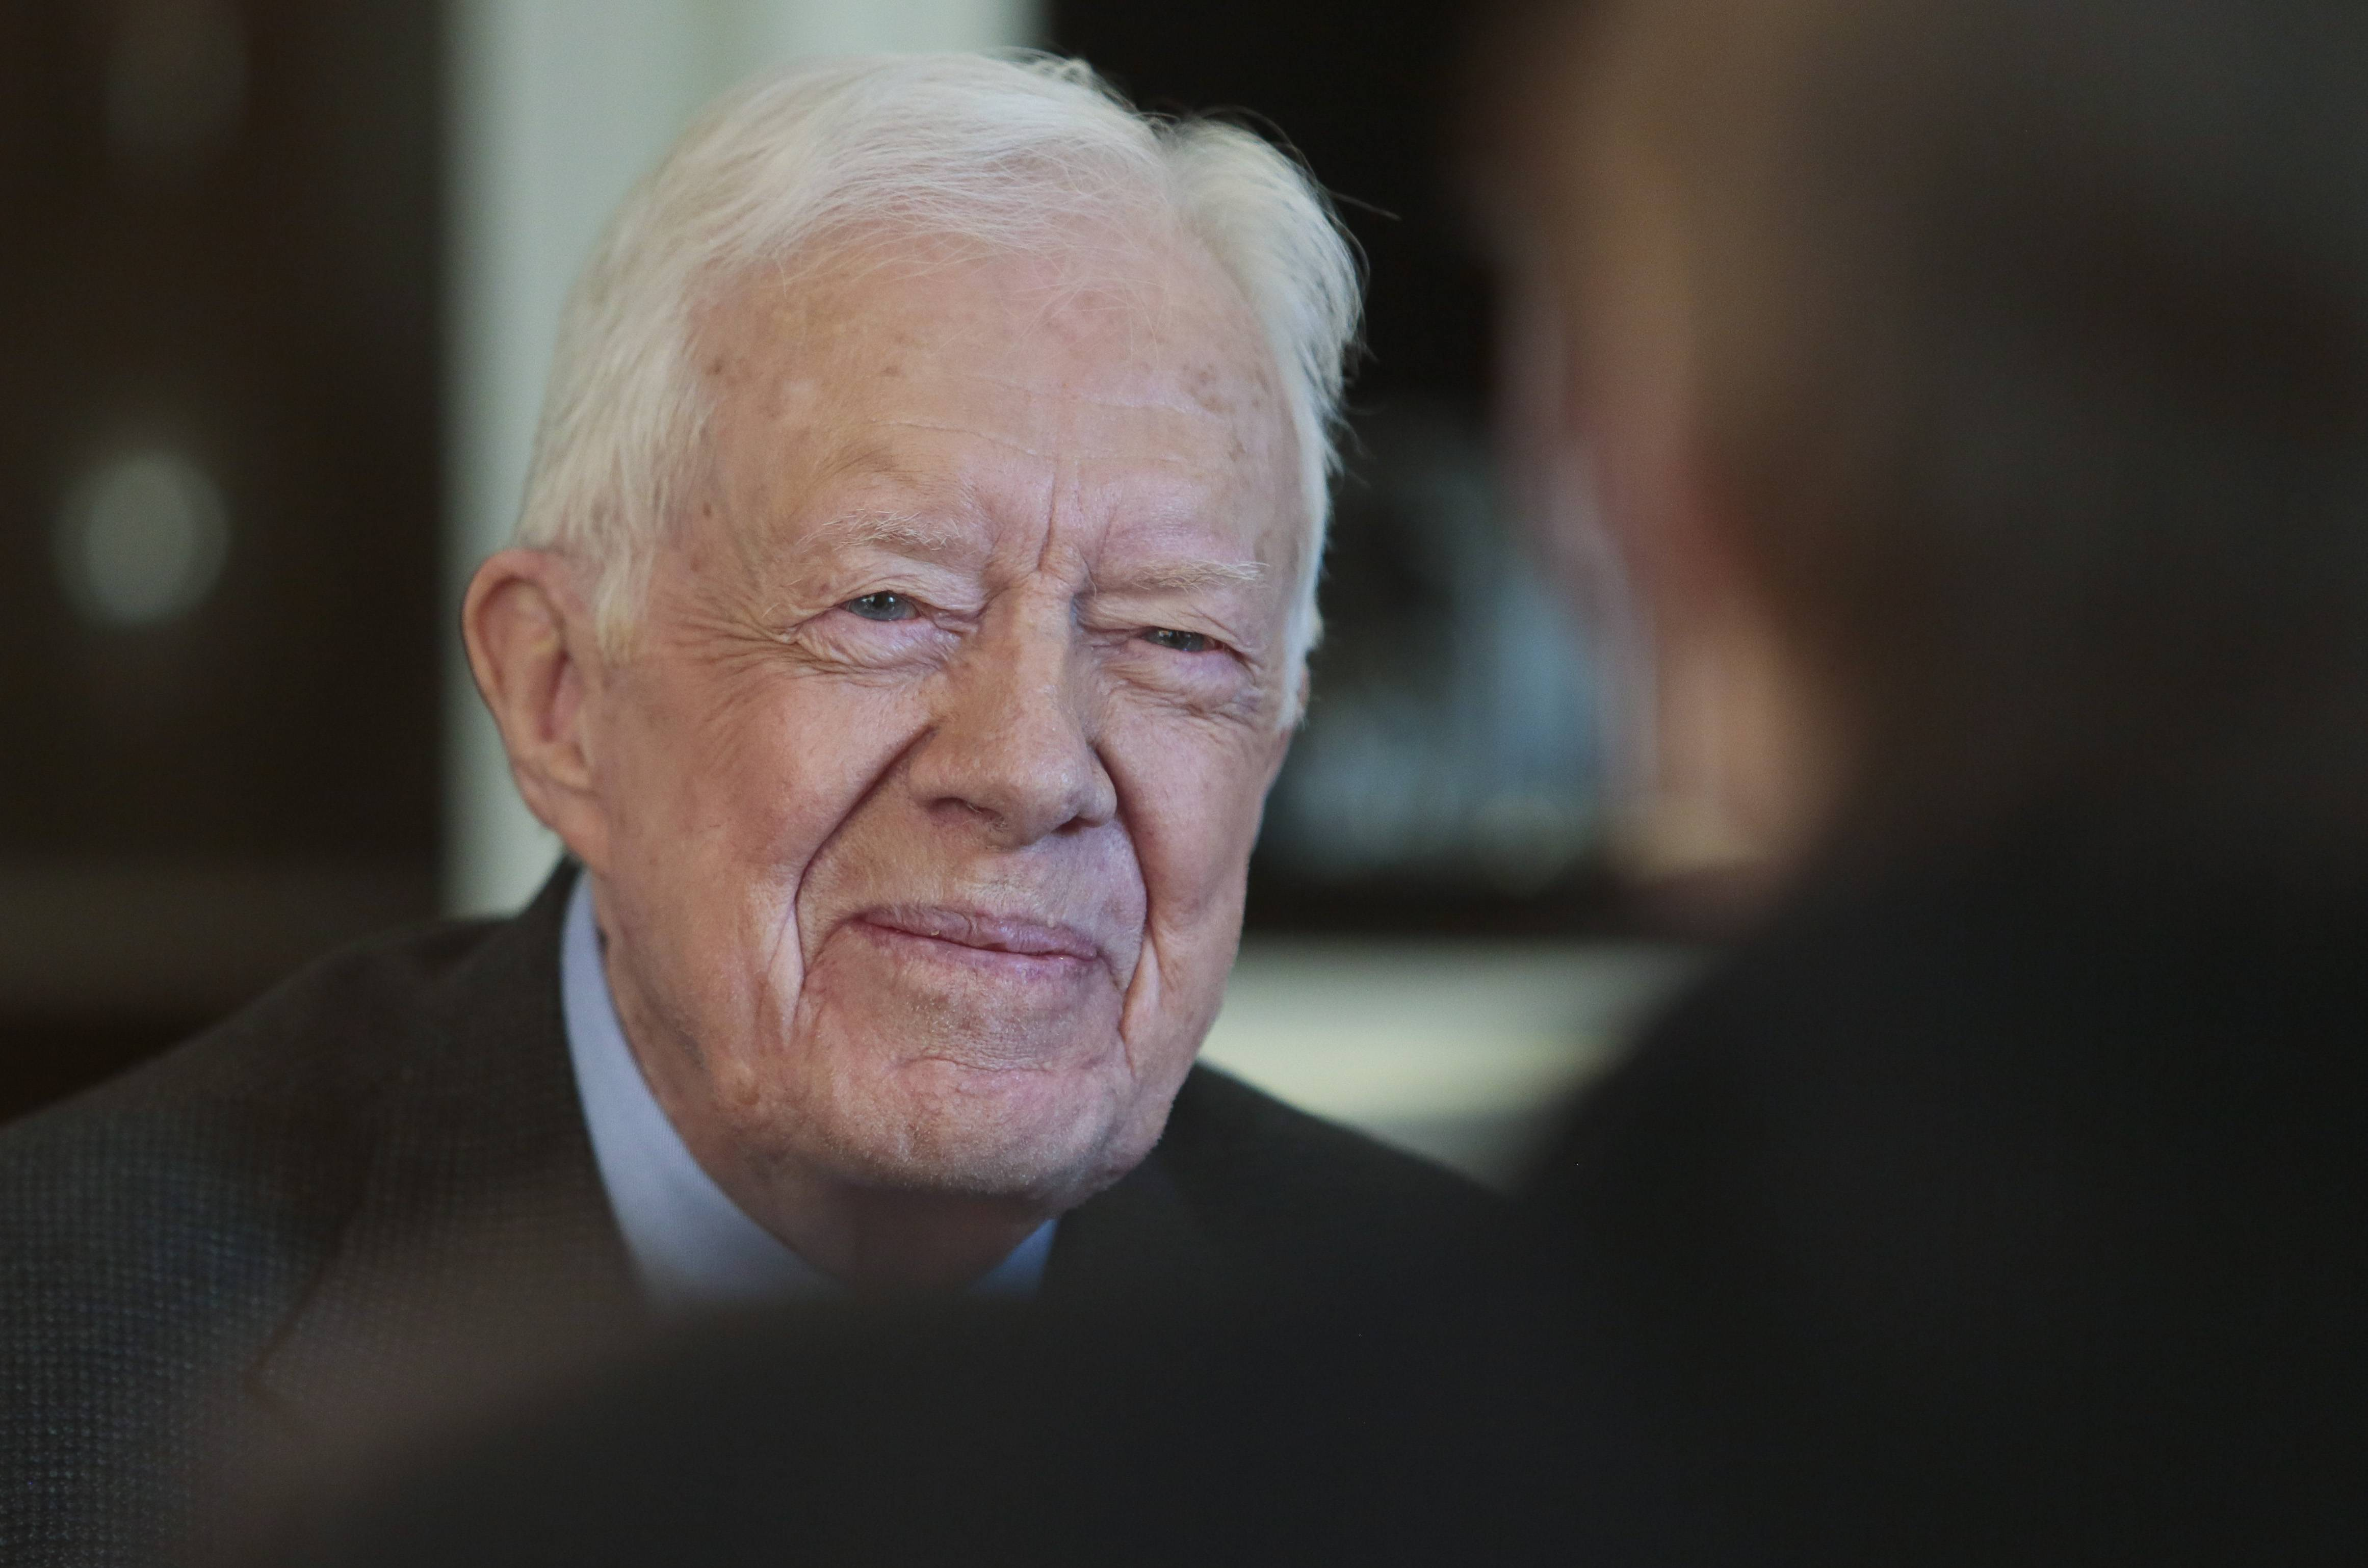 Former President Jimmy Carter said he prefers the mail more than electronic messaging because it's less likely the NSA will be monitoring what he wrote.